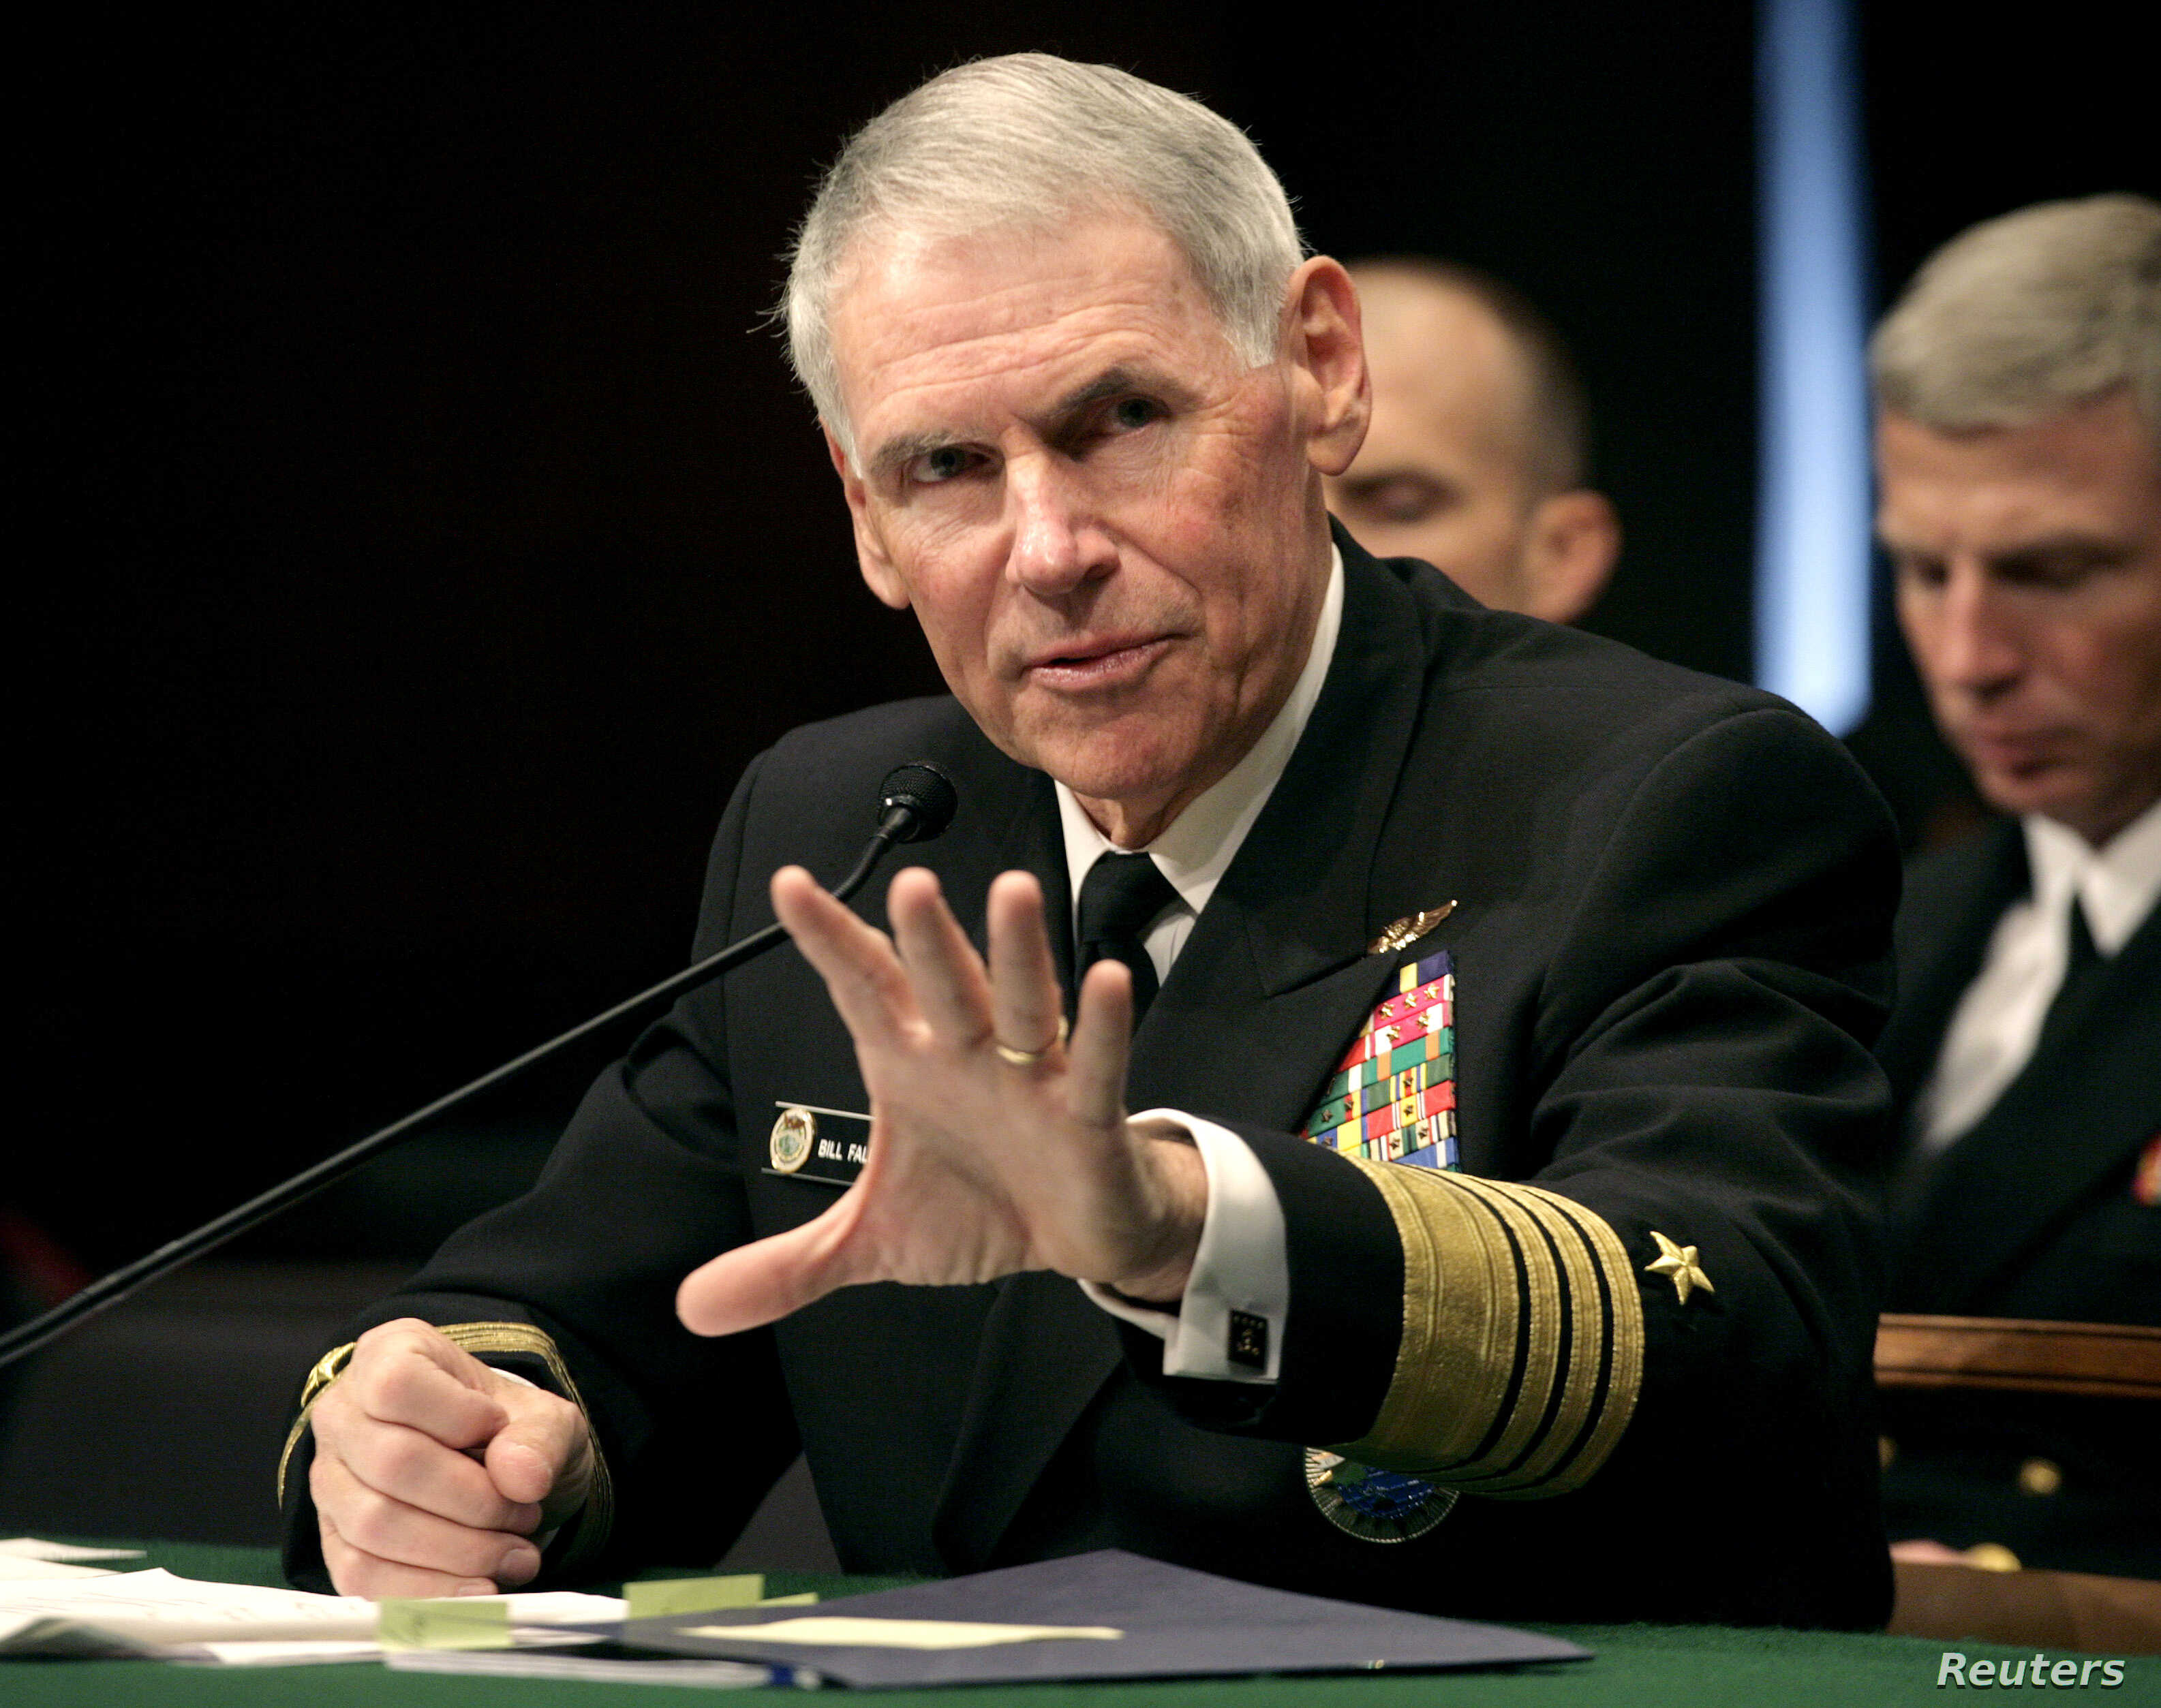 Navy Adm. William Fallon testifies before the Senate Armed Services Committee on Capitol Hill in Washington during a hearing on his nomination to be commander of the US Centeral Command Jan. 30, 2007.